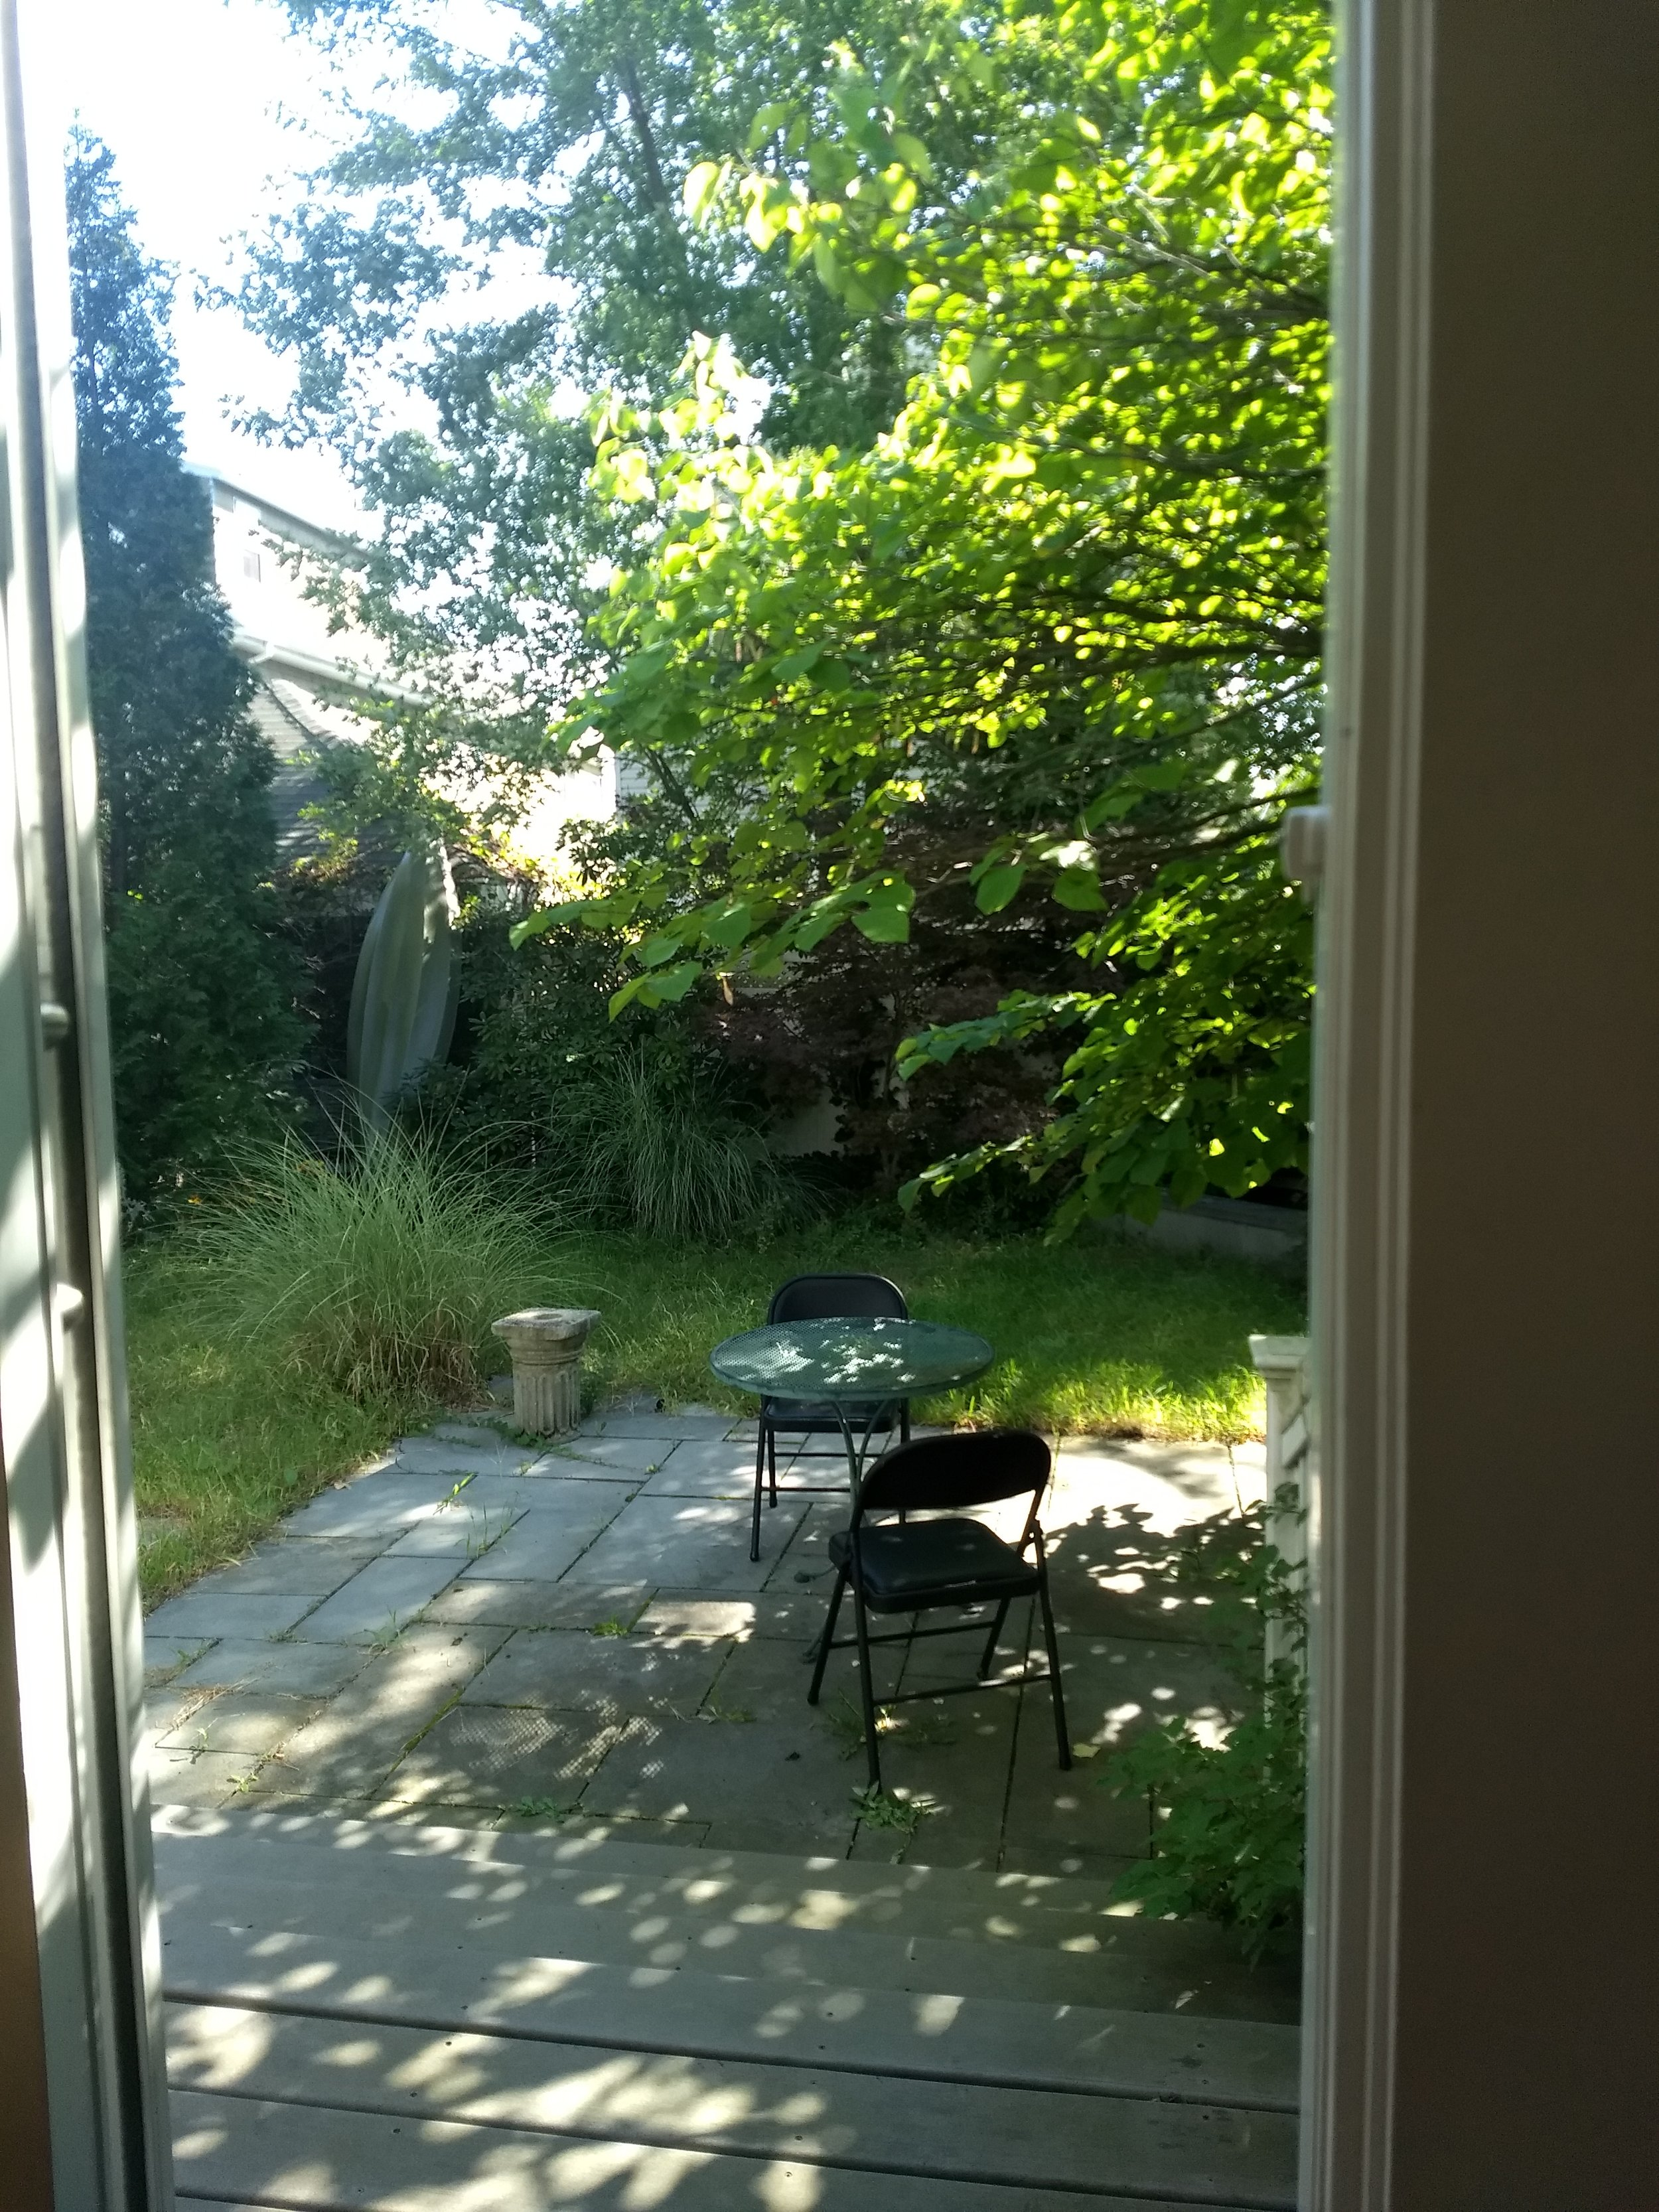 A bit bedraggled, but every writer needs a garden to take care of